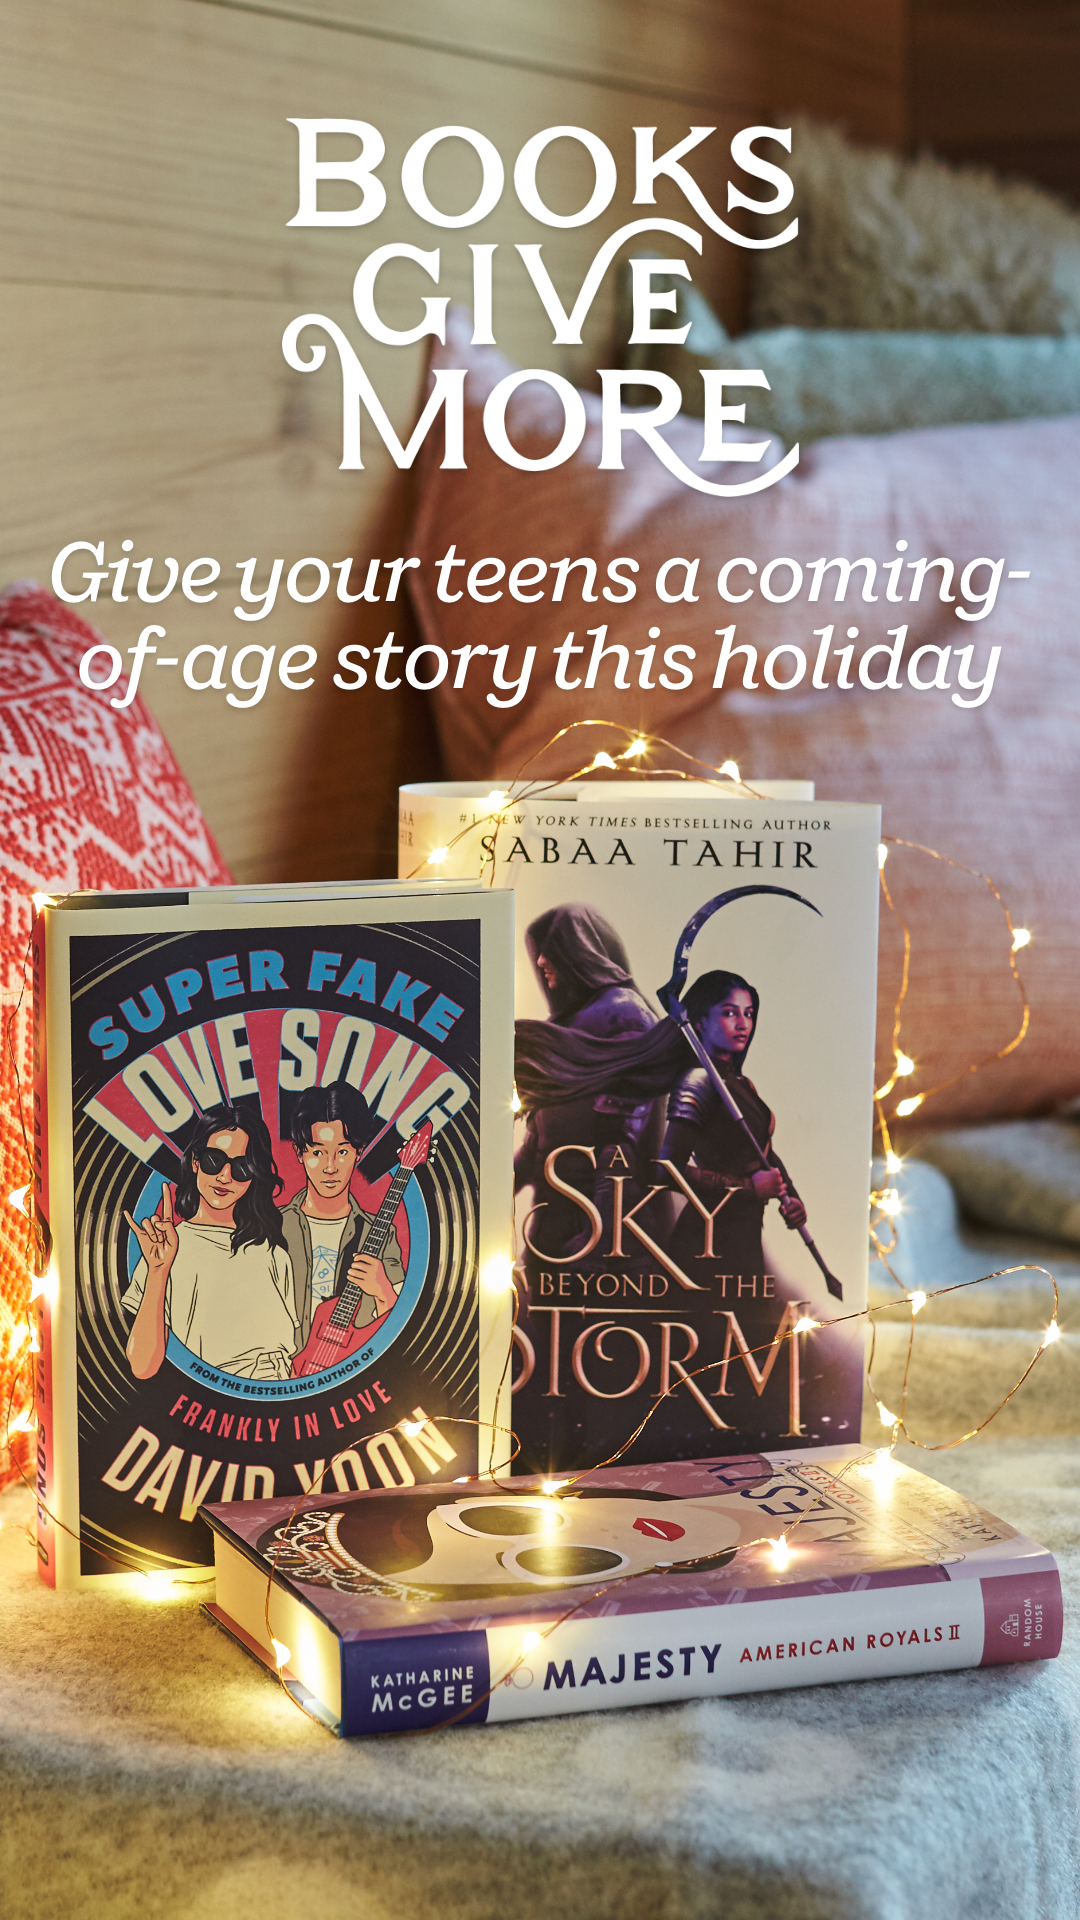 Give the teens on your holiday list a coming-of-age story they'll never forget. Readers will treasure these young adult novels by their favorite YA authors including Kim Johnson, Katharine McGee, Jennifer Niven, Nic Stone, and David Yoon.